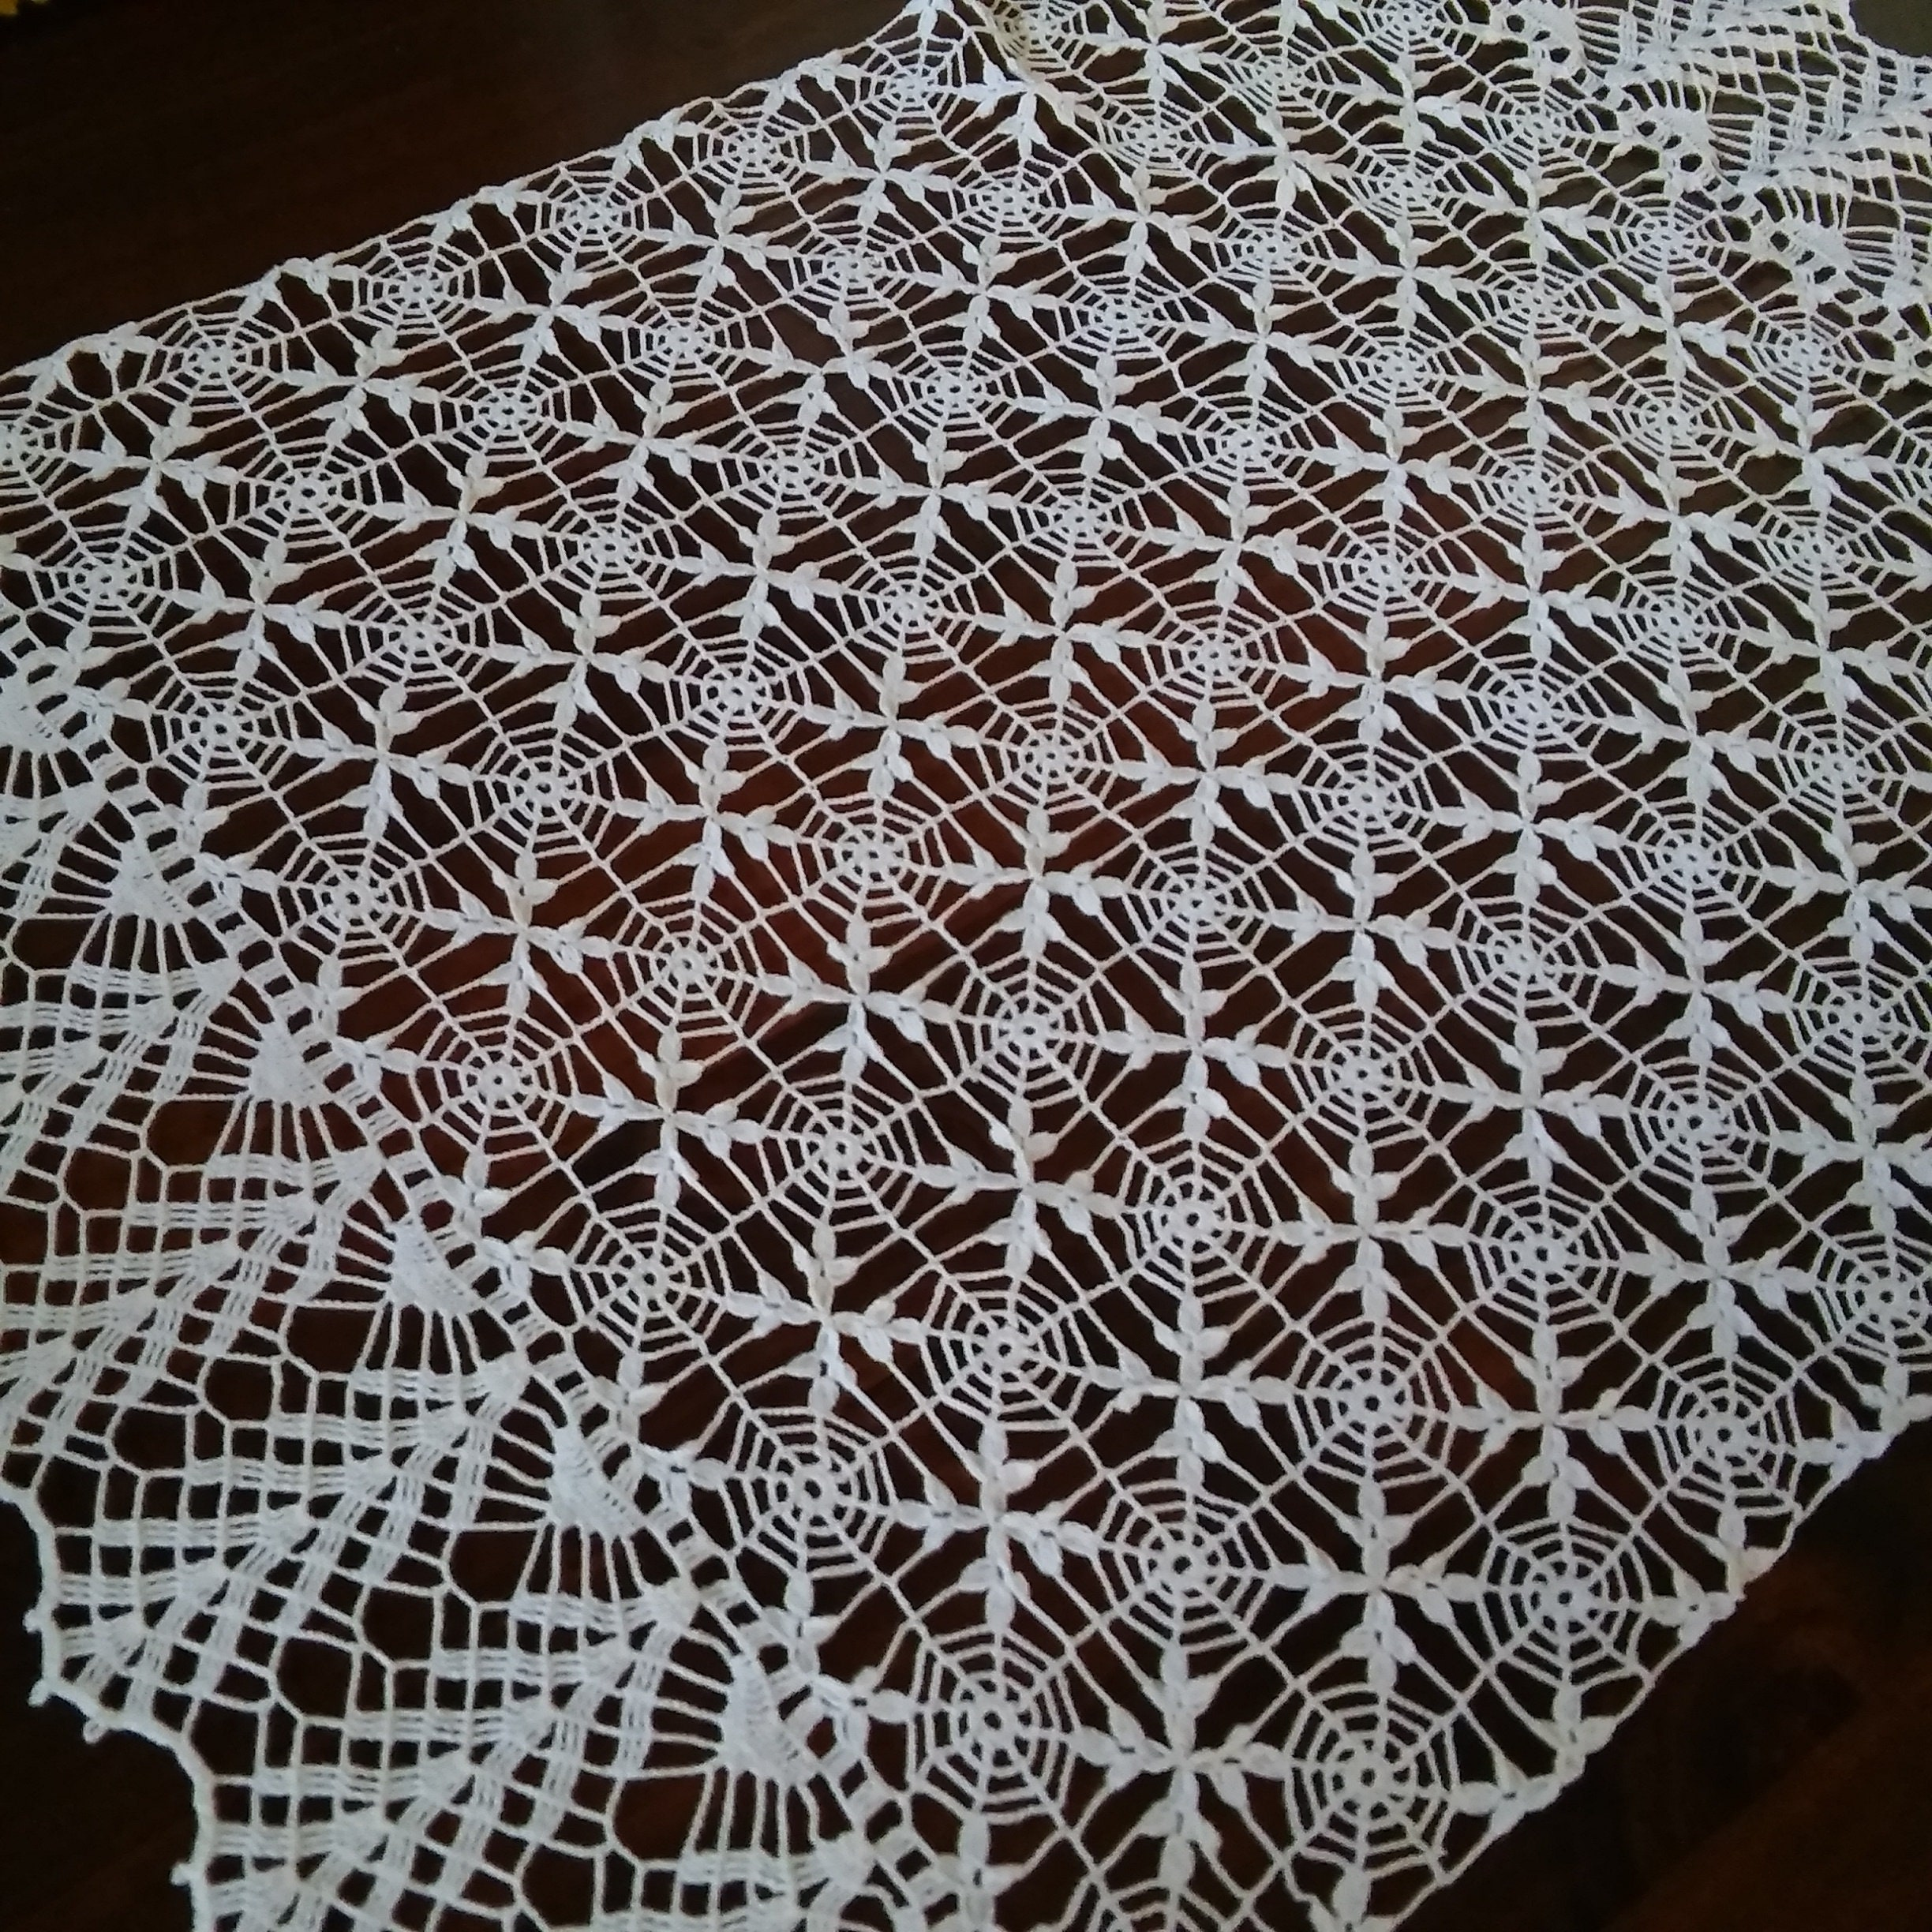 31 X 20spiderweb Crochet Tablecloth Lace Etsy